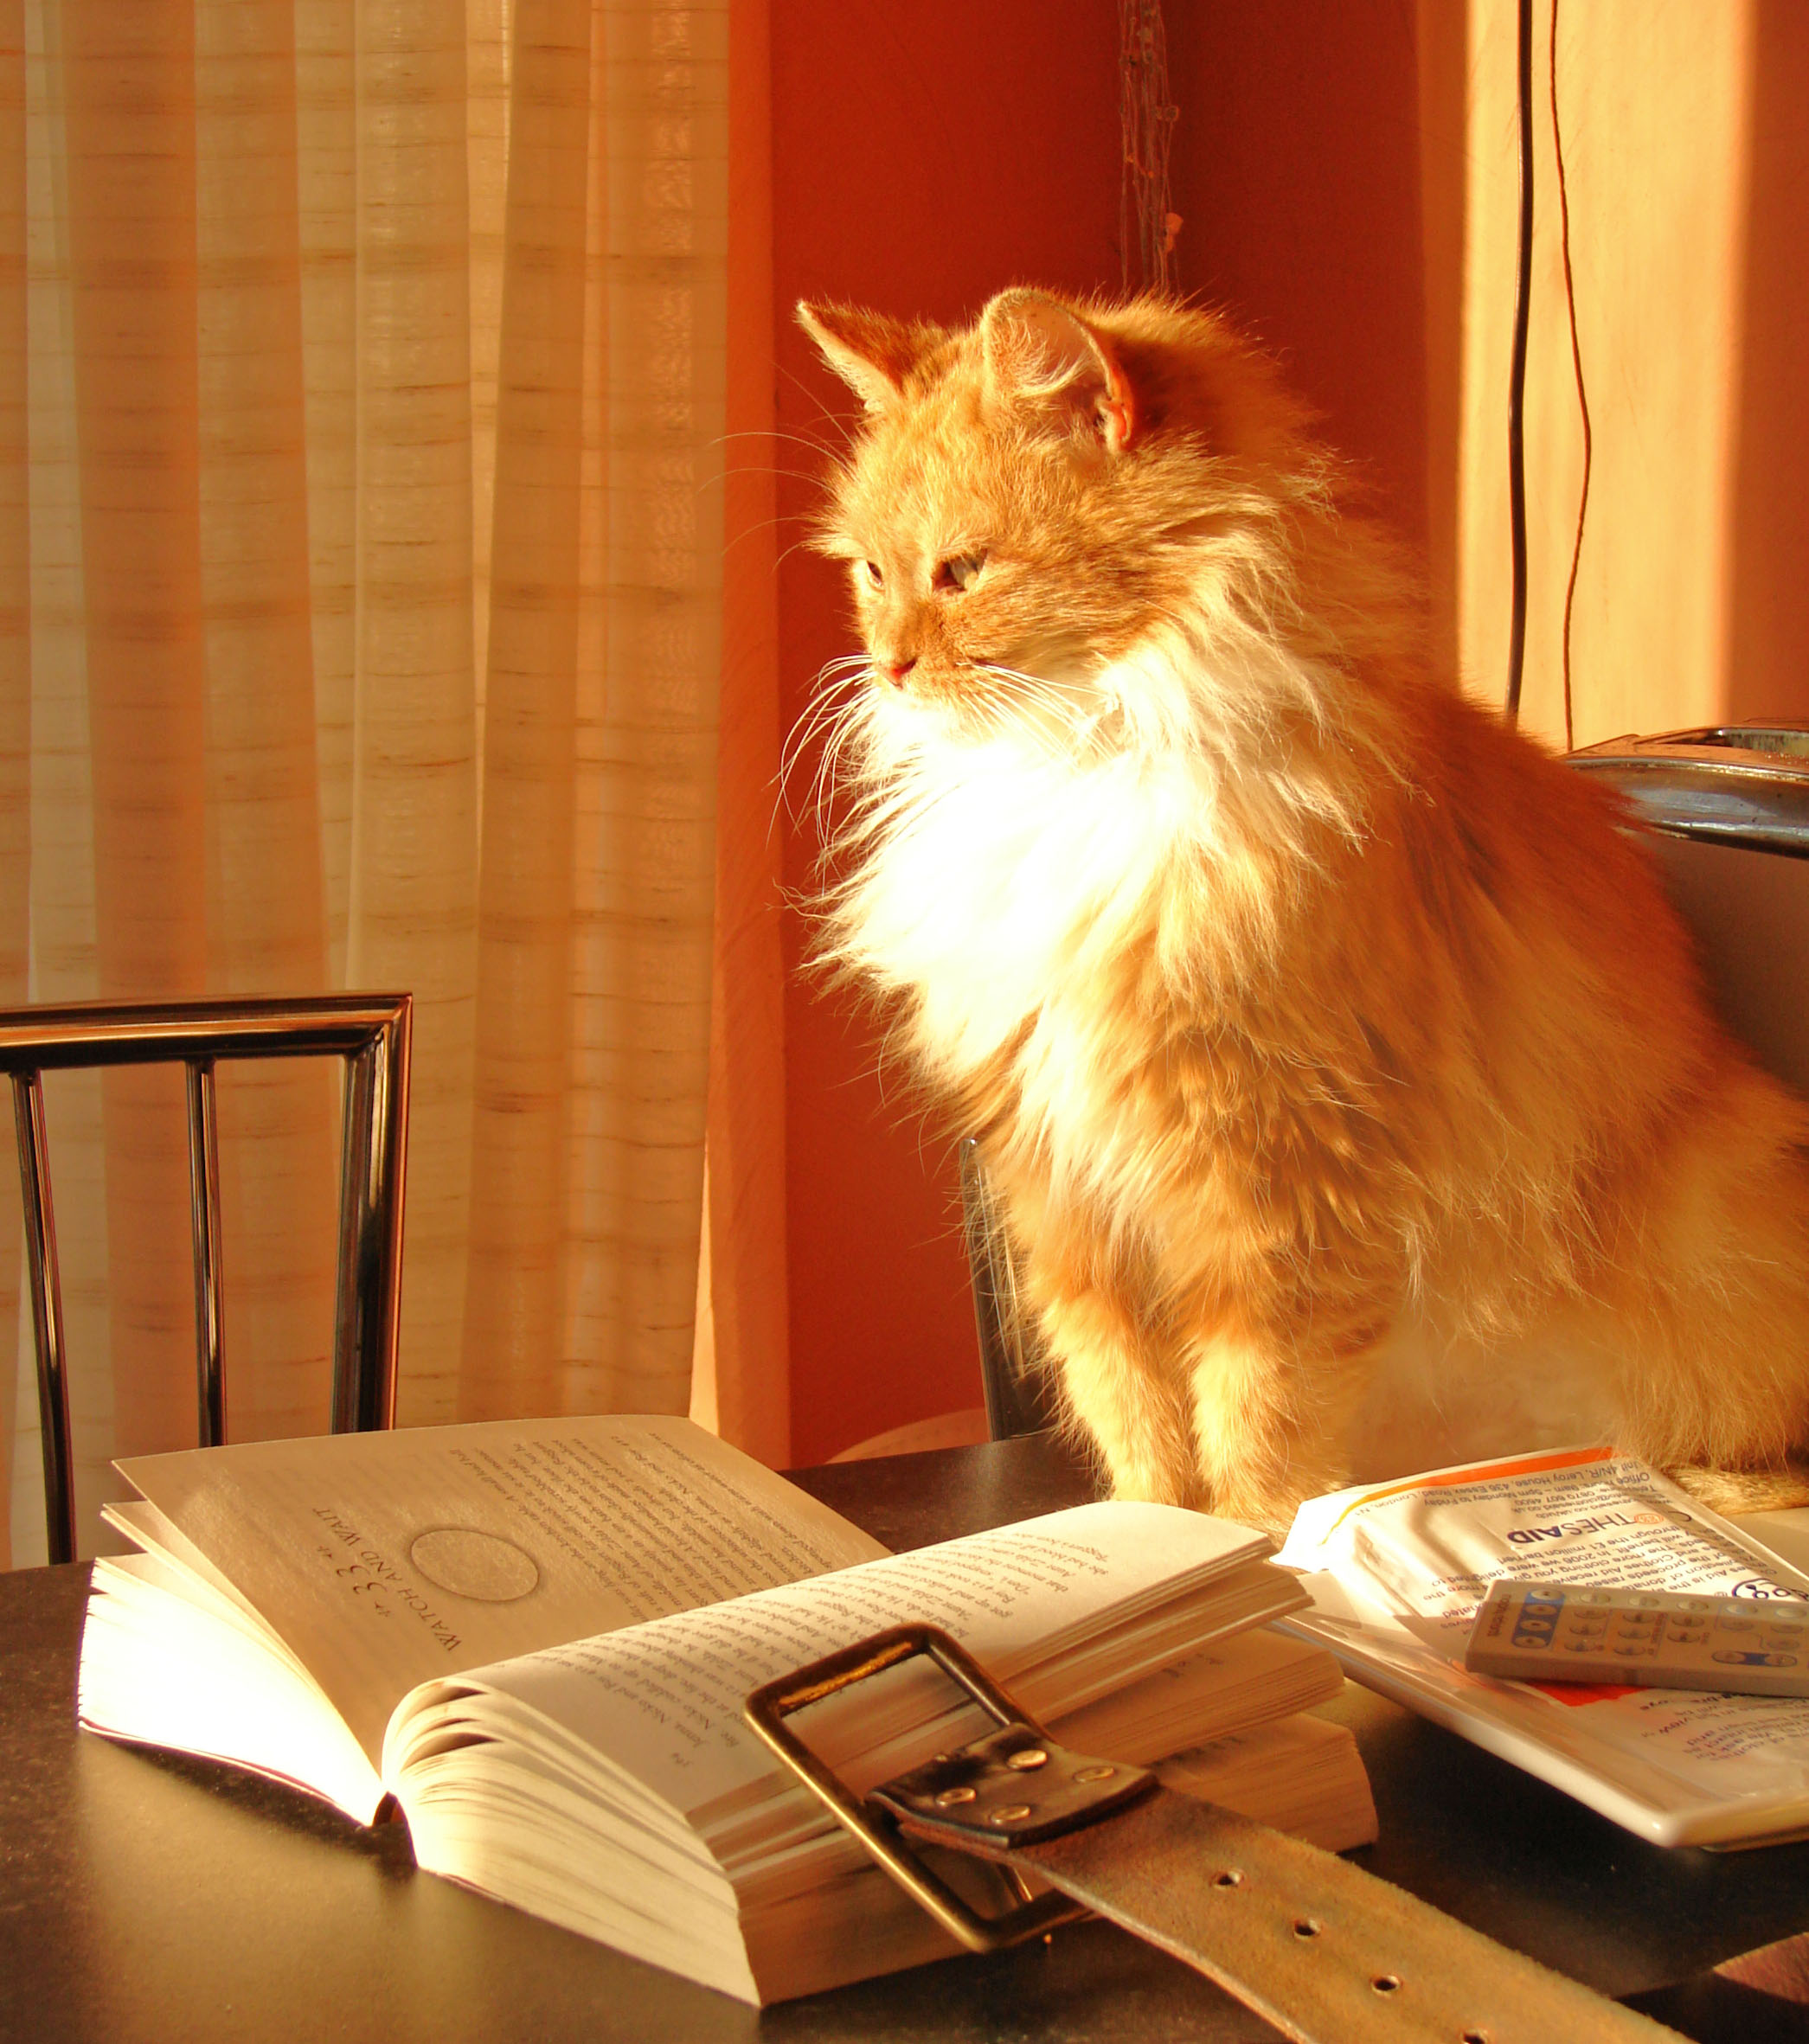 10 Great Pictures of Cats and Books | Interesting Literature